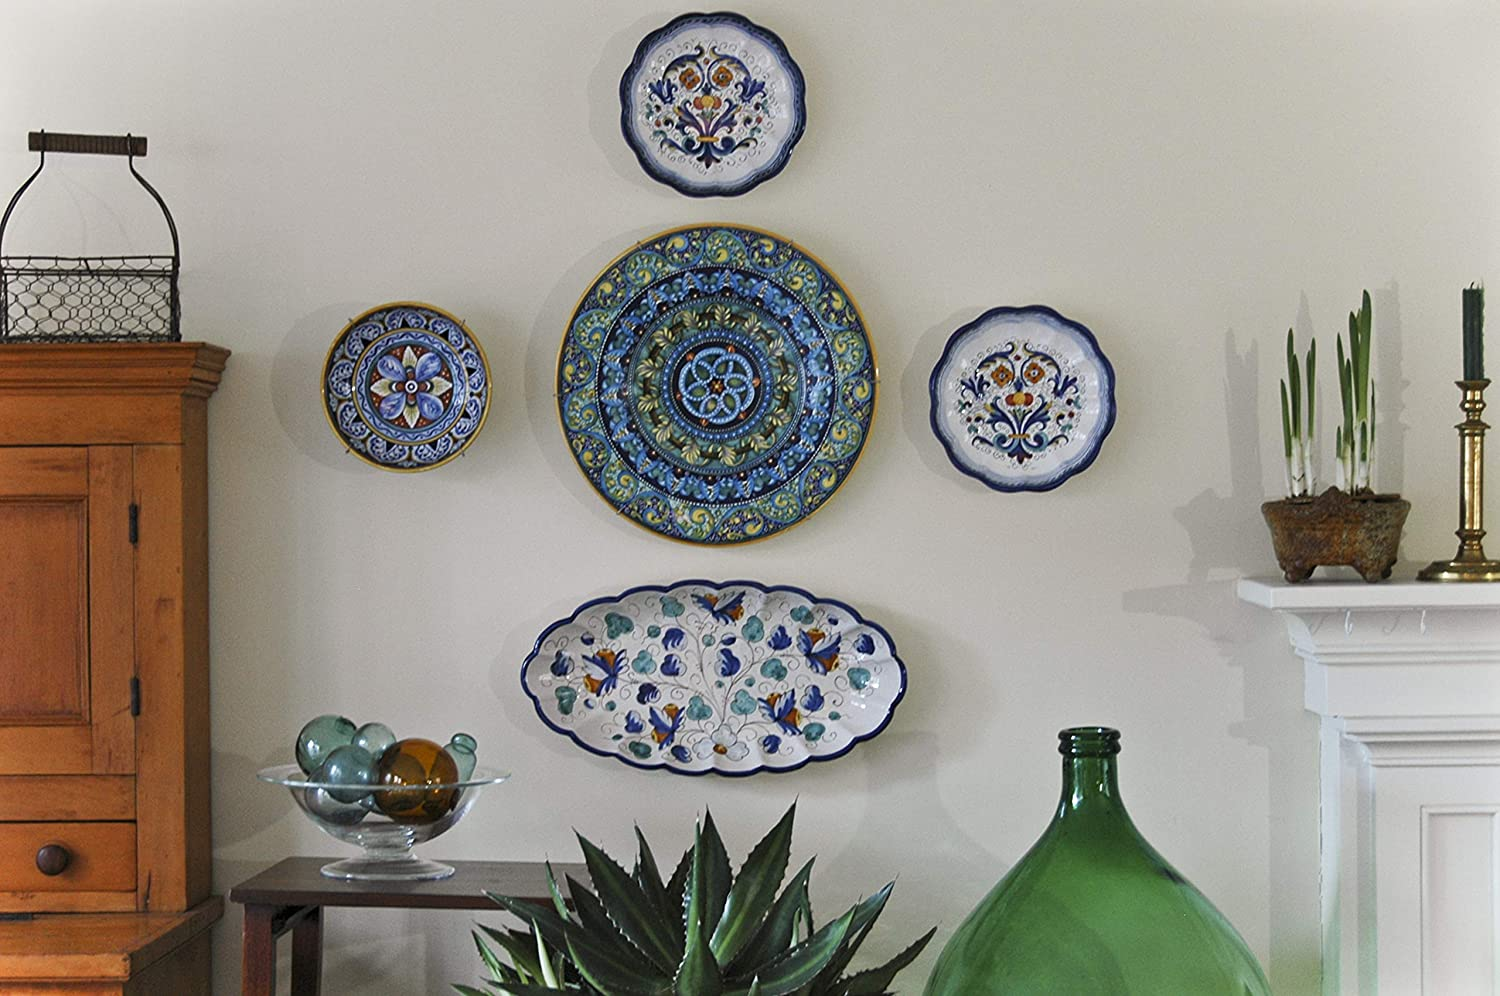 large bowls on wall